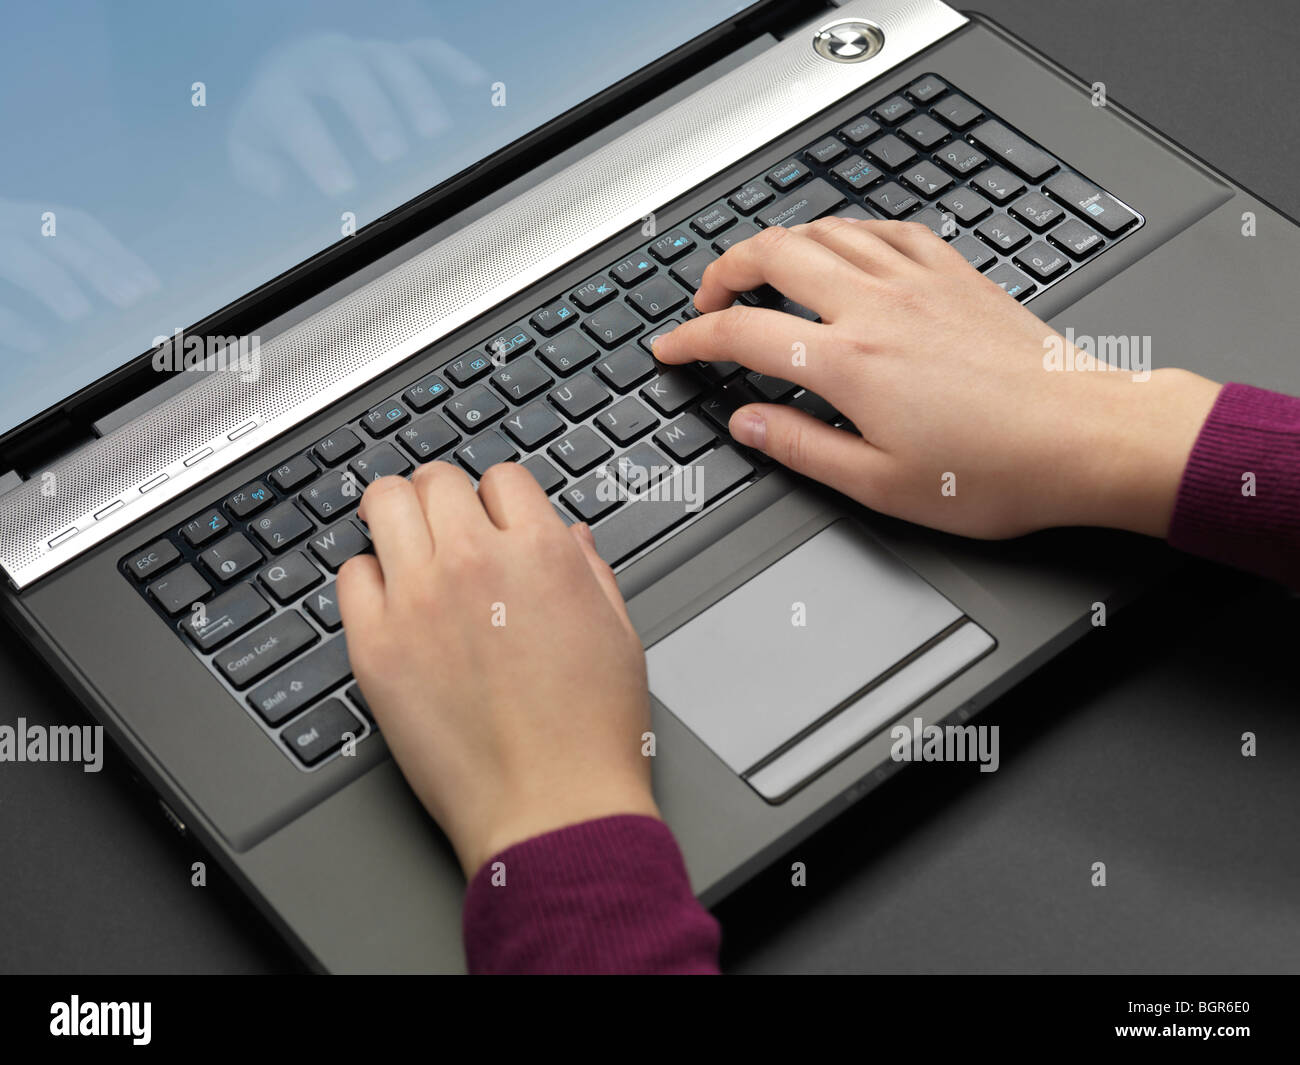 Woman typing on a laptop computer keyboard - Stock Image